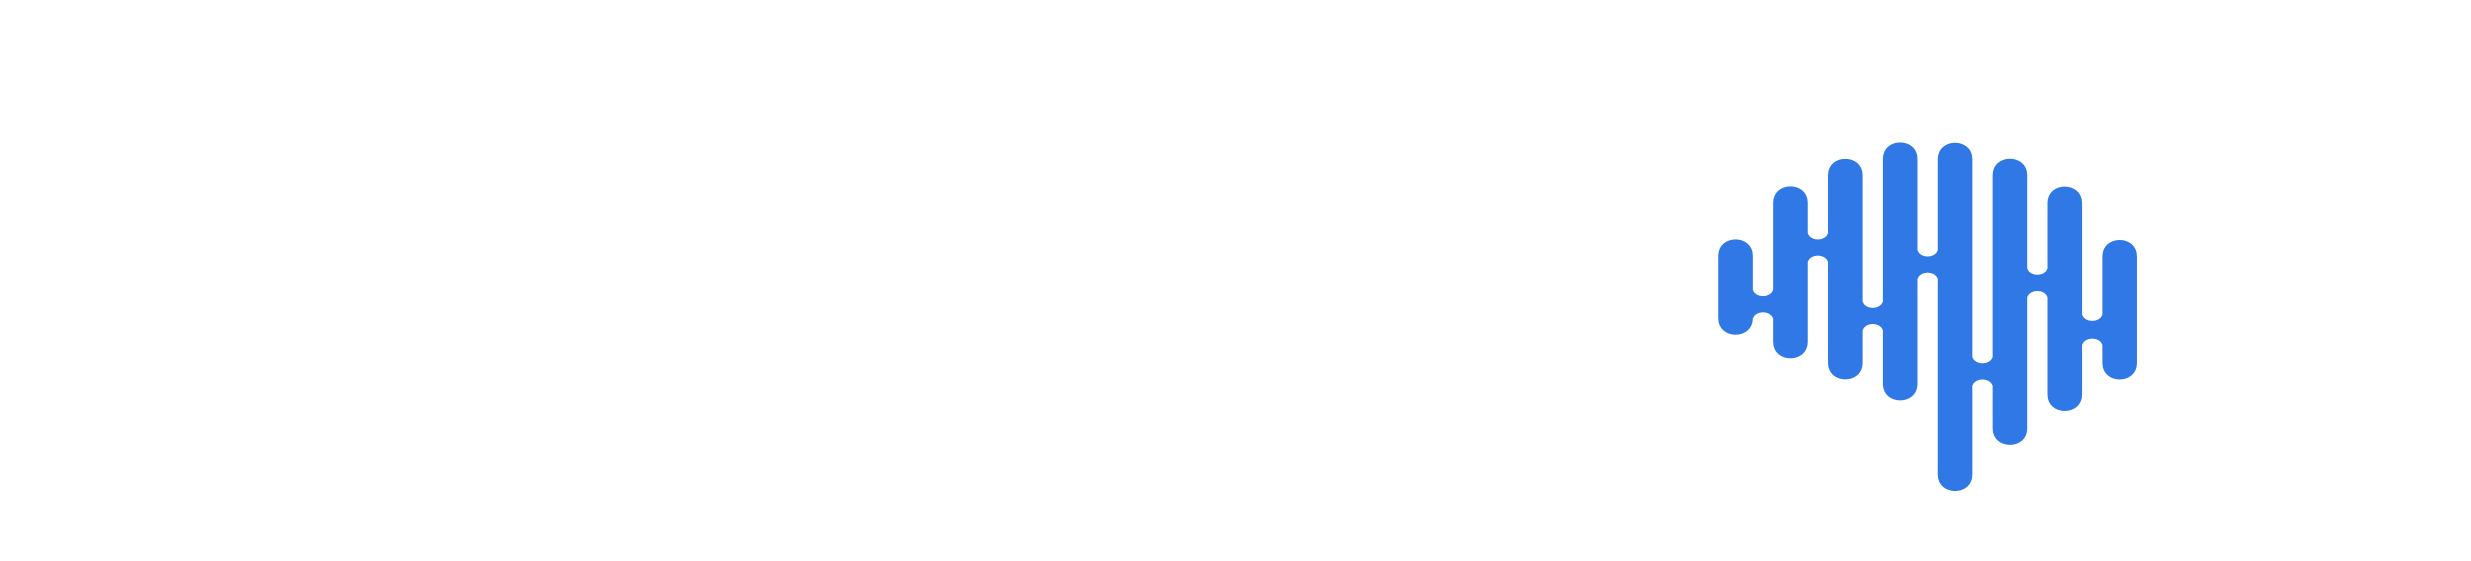 immersion_logo_tight_whitetext_blue_2f7ae5